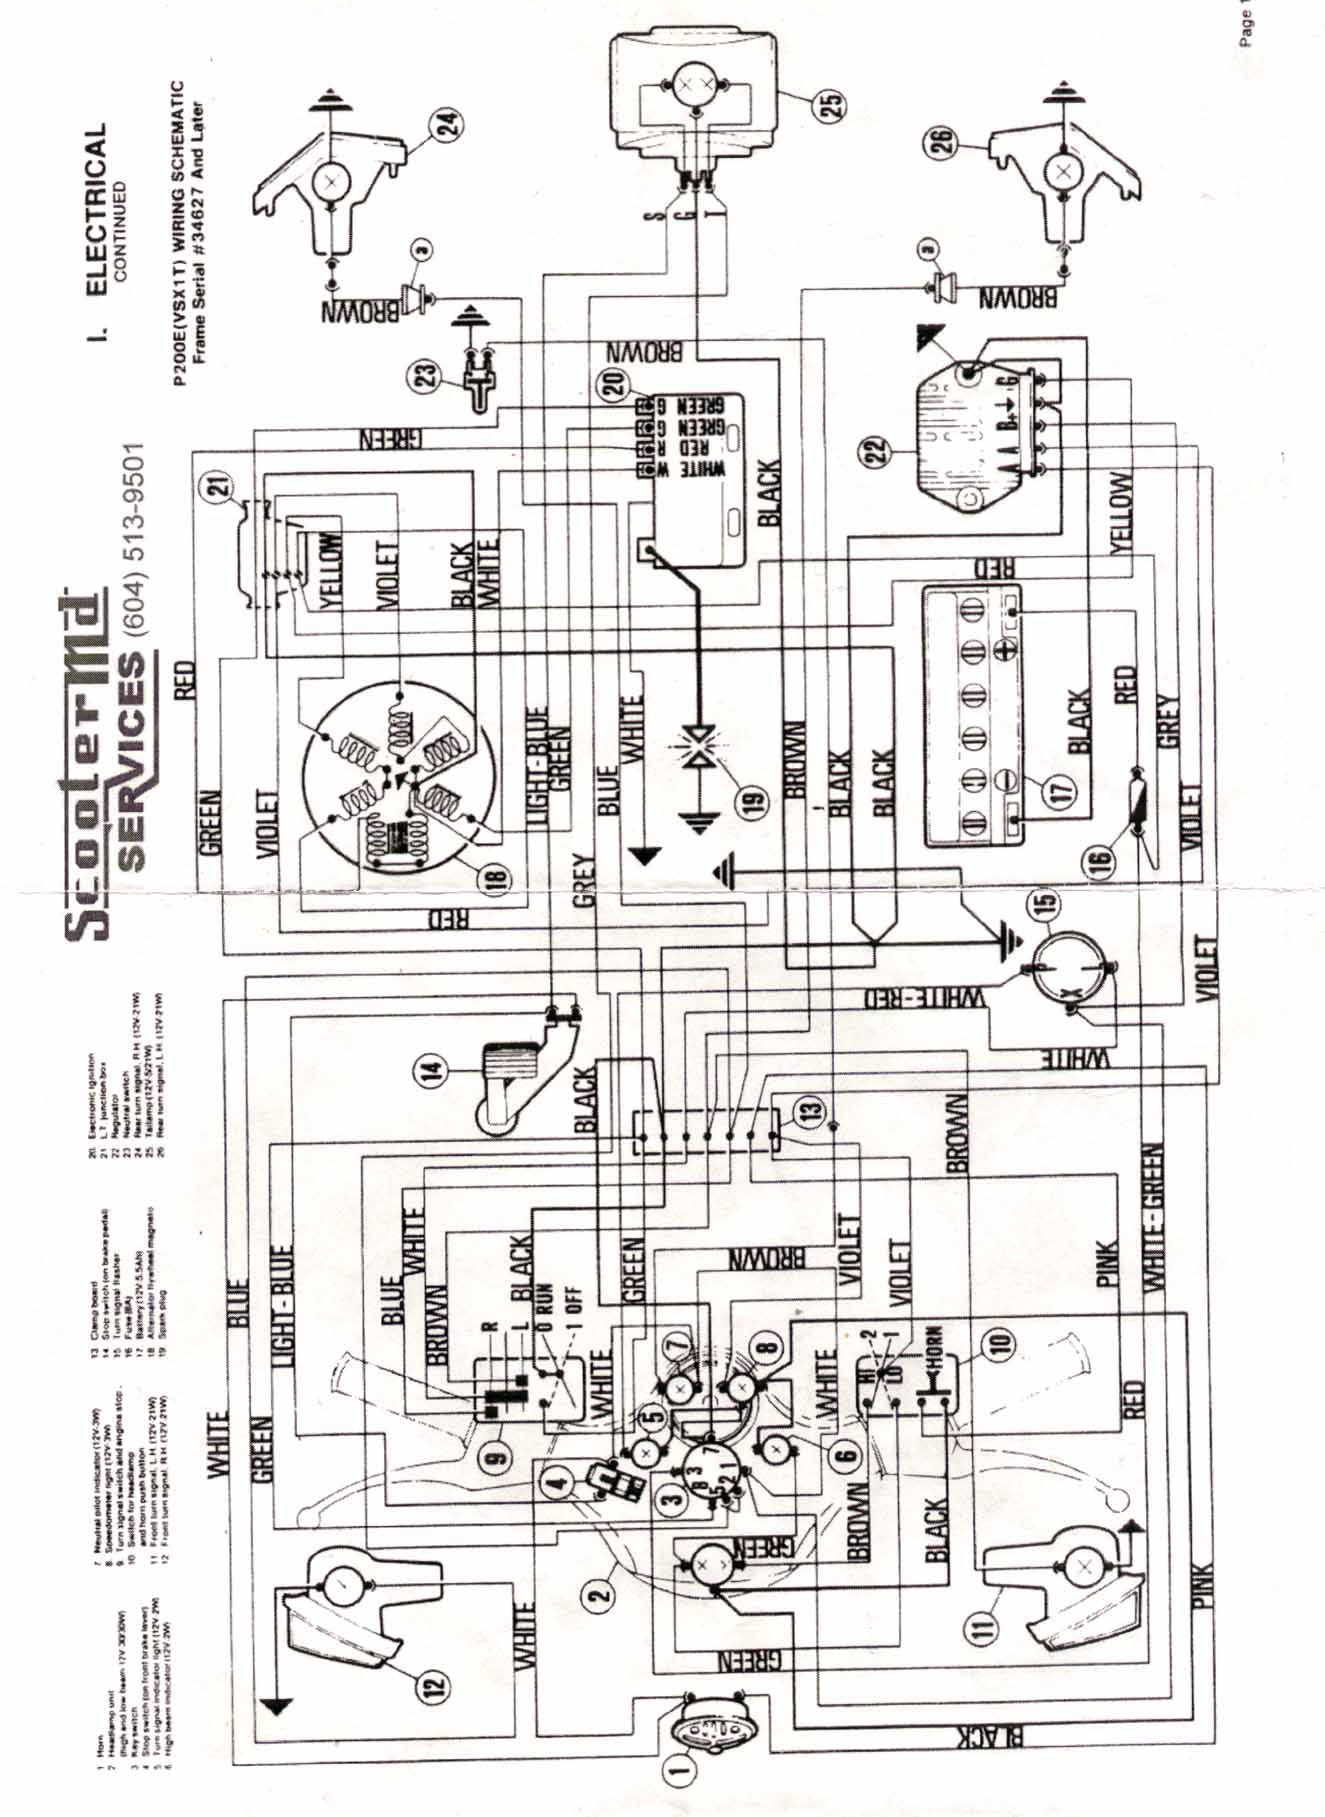 p200diag2 vespa p series maintenance & repair vespa p125x wiring diagram at fashall.co